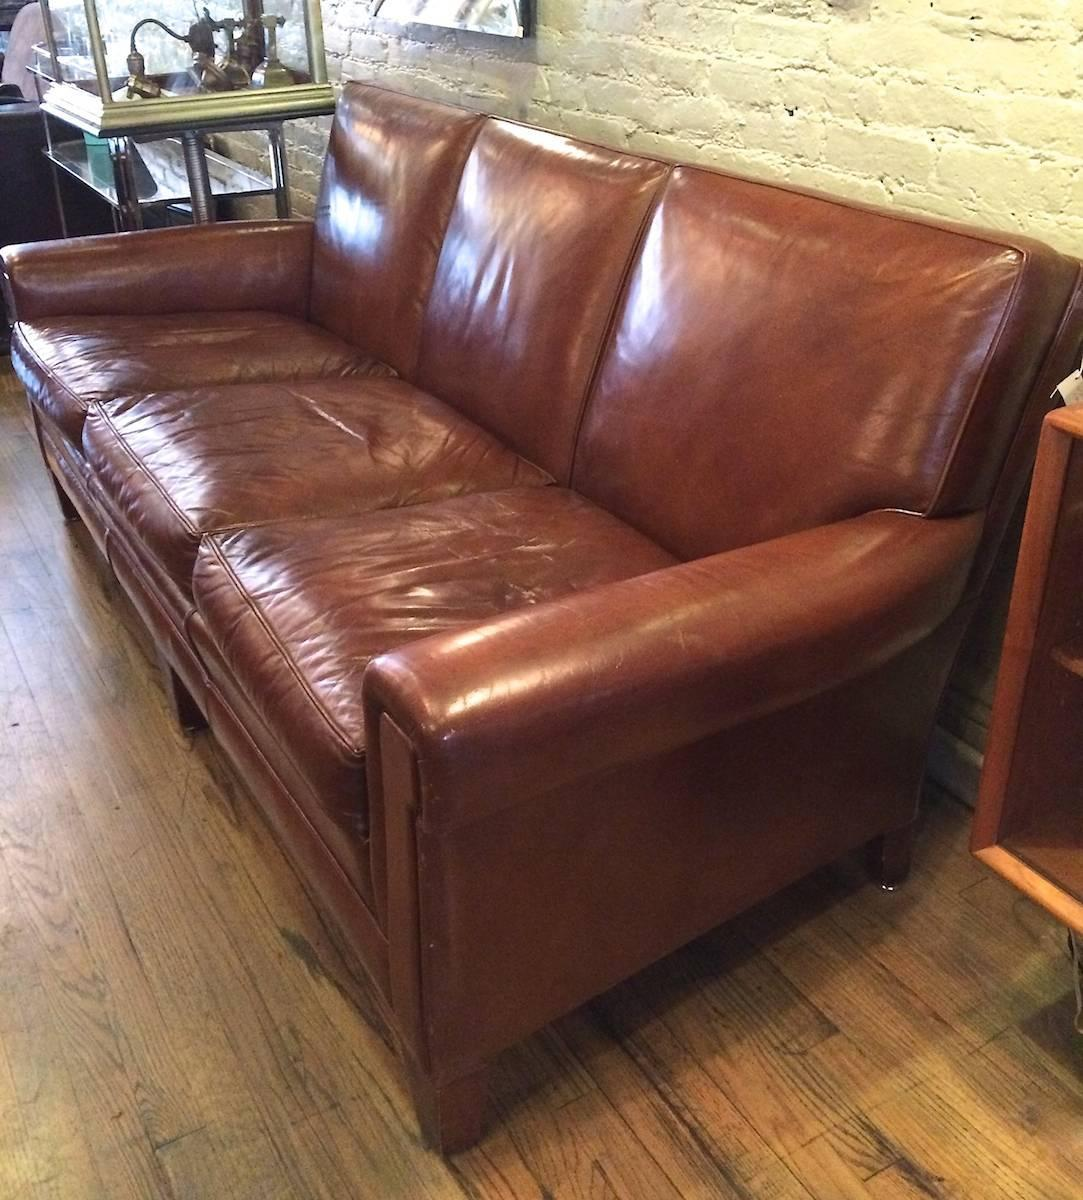 sikes chair company childrens table and chairs new zealand 1940s stately leather club sofa by the furniture co